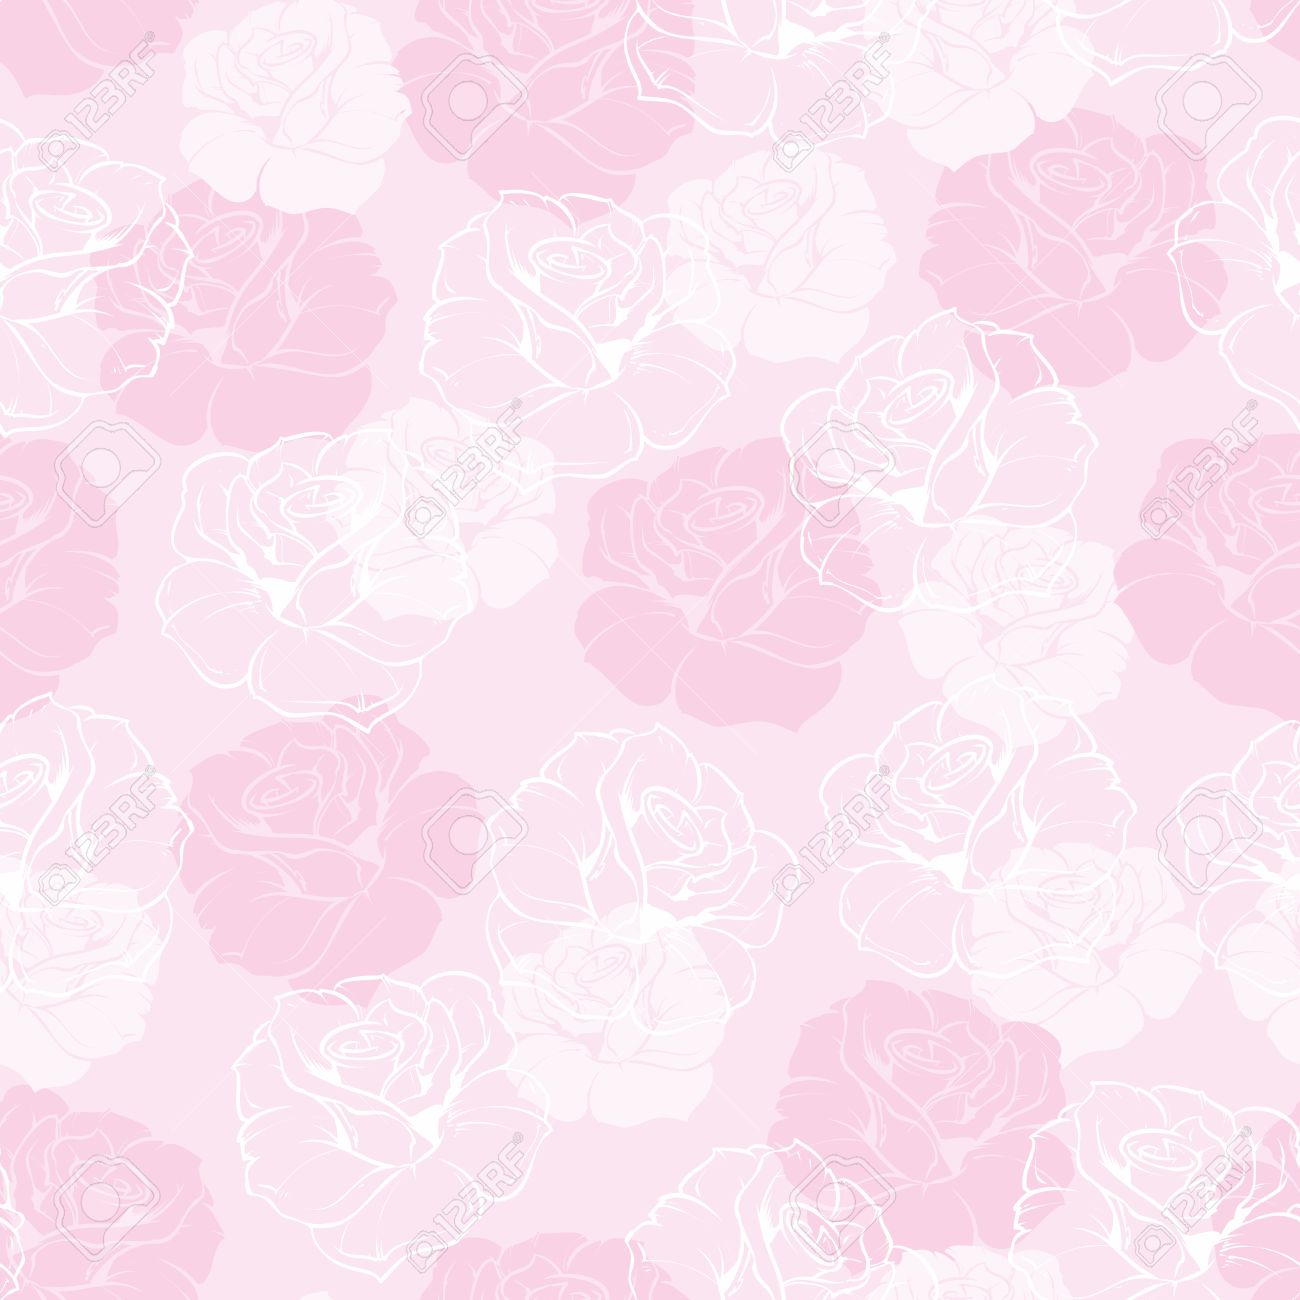 Seamless Floral Vector Pattern With Elegant Pink And White Roses Light Baby Background